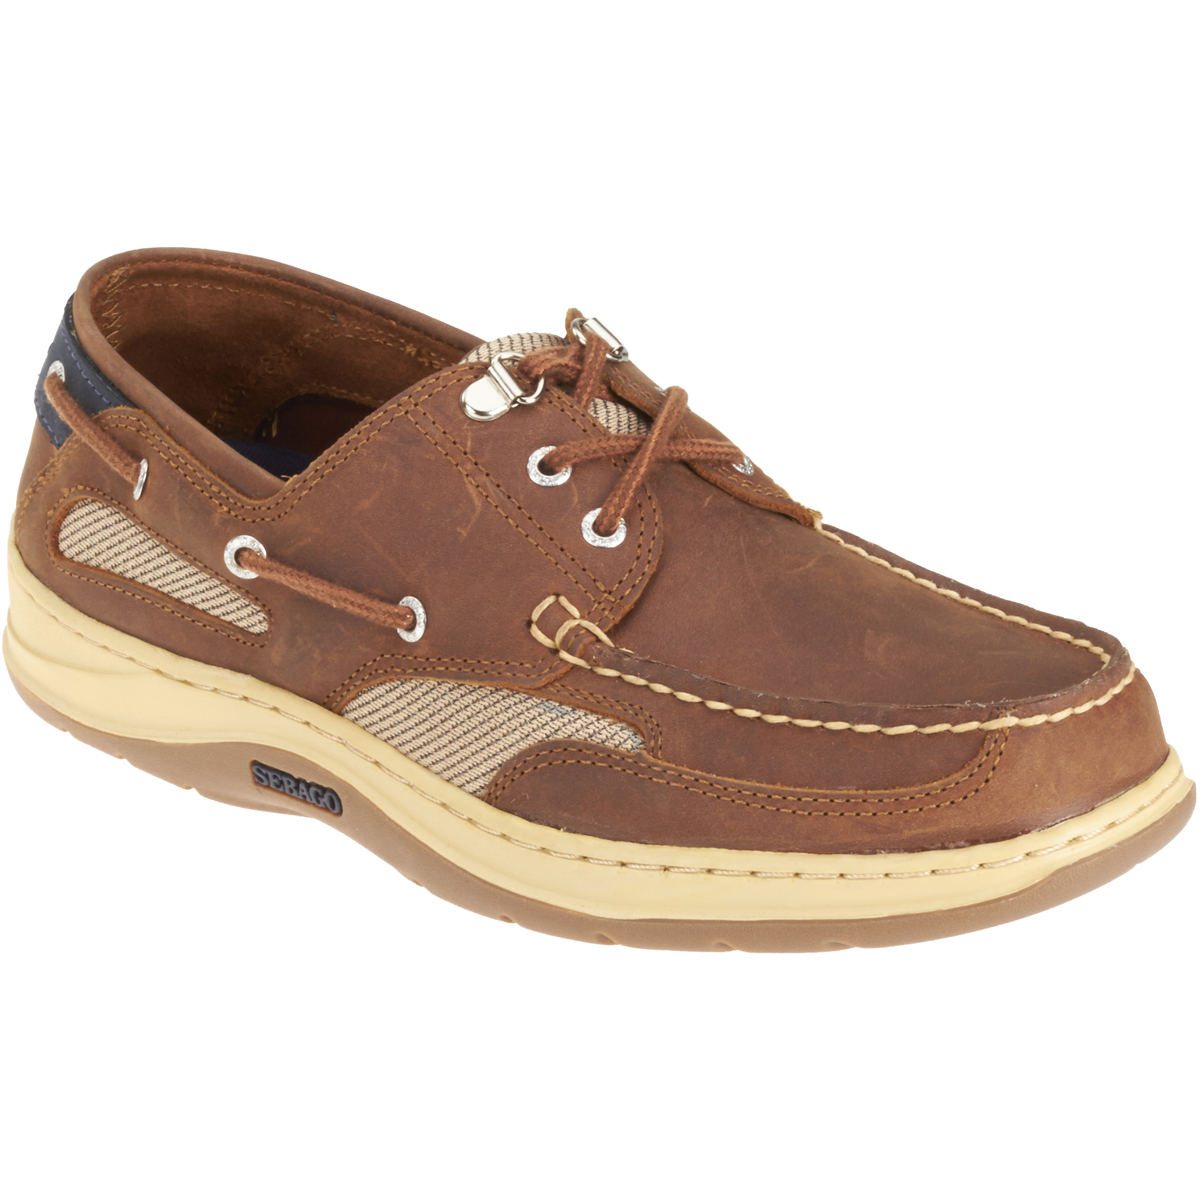 SEBAGO CLOVEHITCH II - WALNUT (B24367)